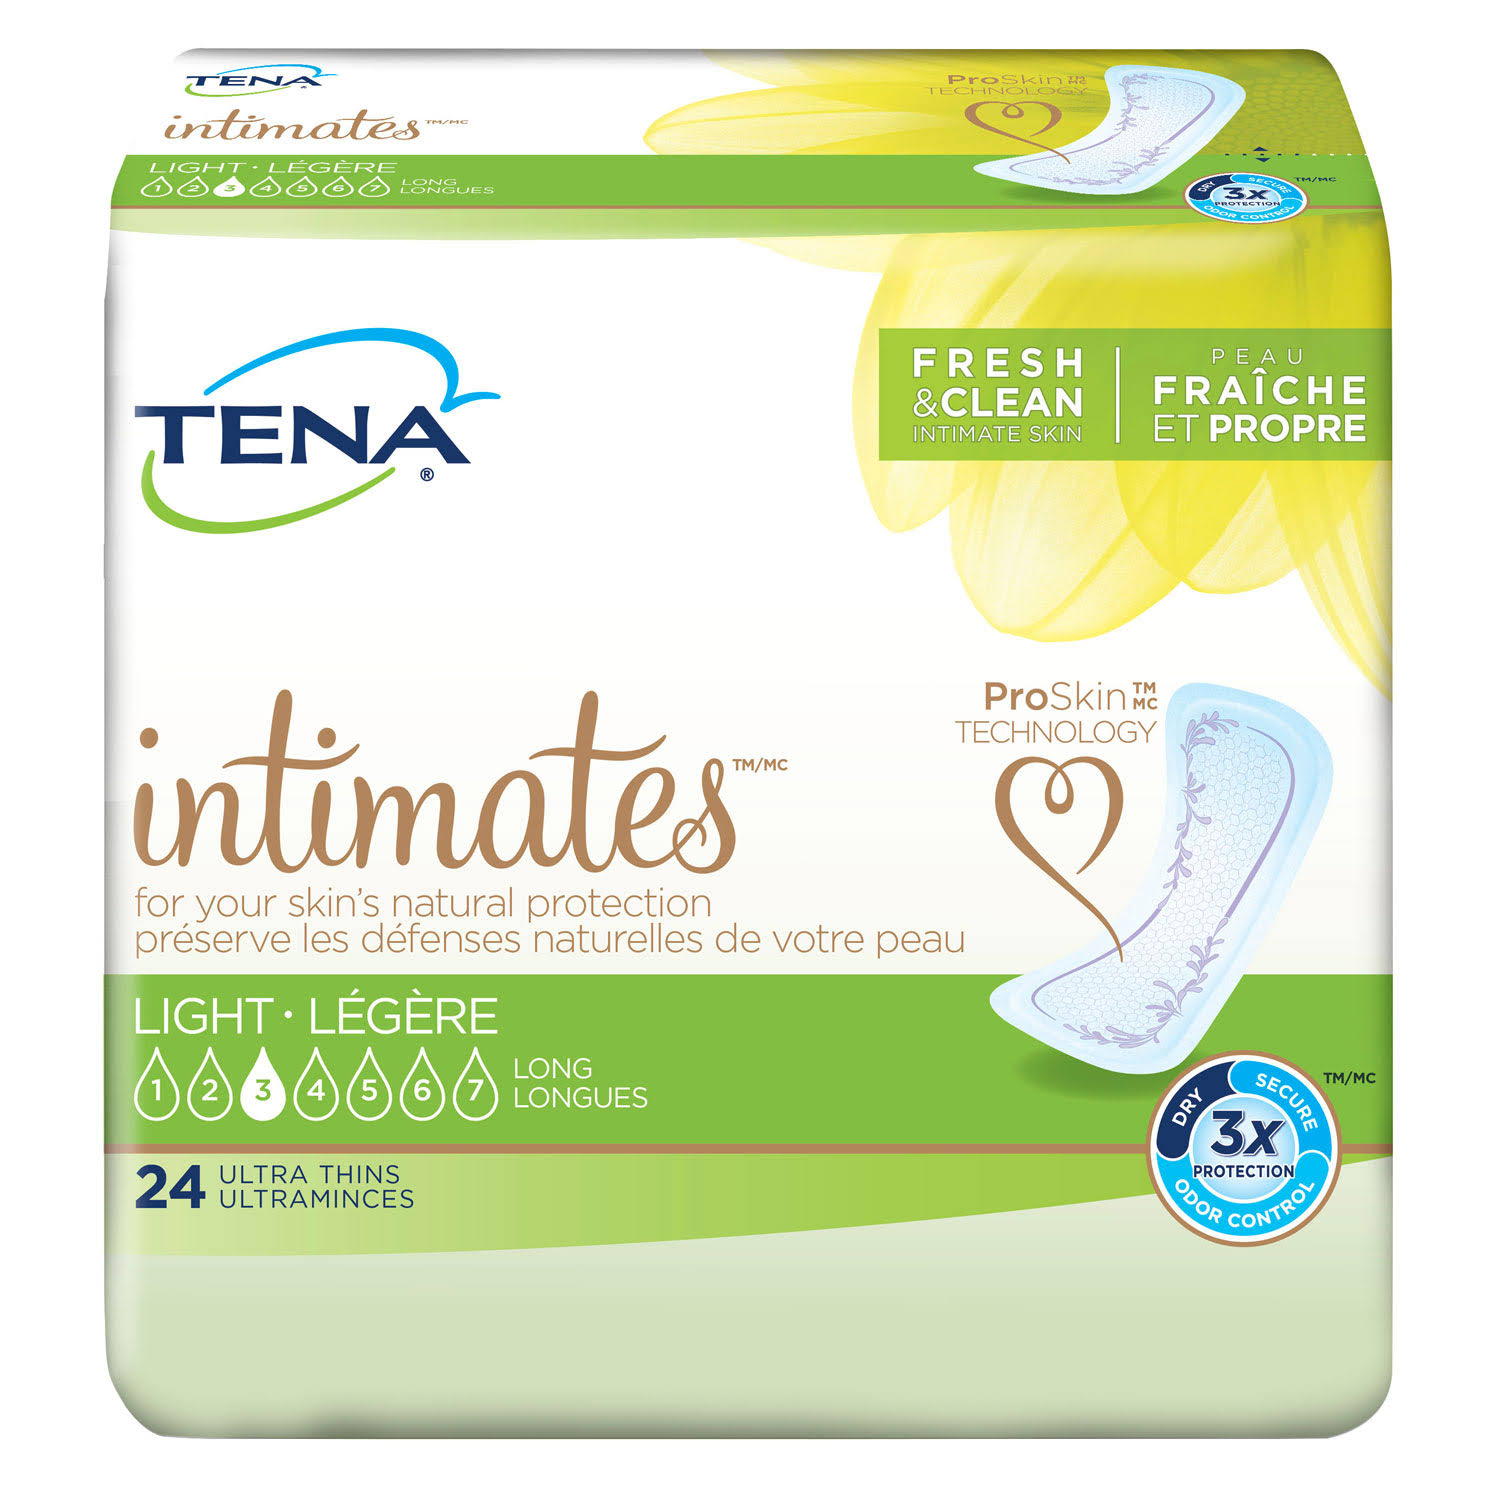 Tena Women's Incontinence Ultra Thin Pads - 24ct